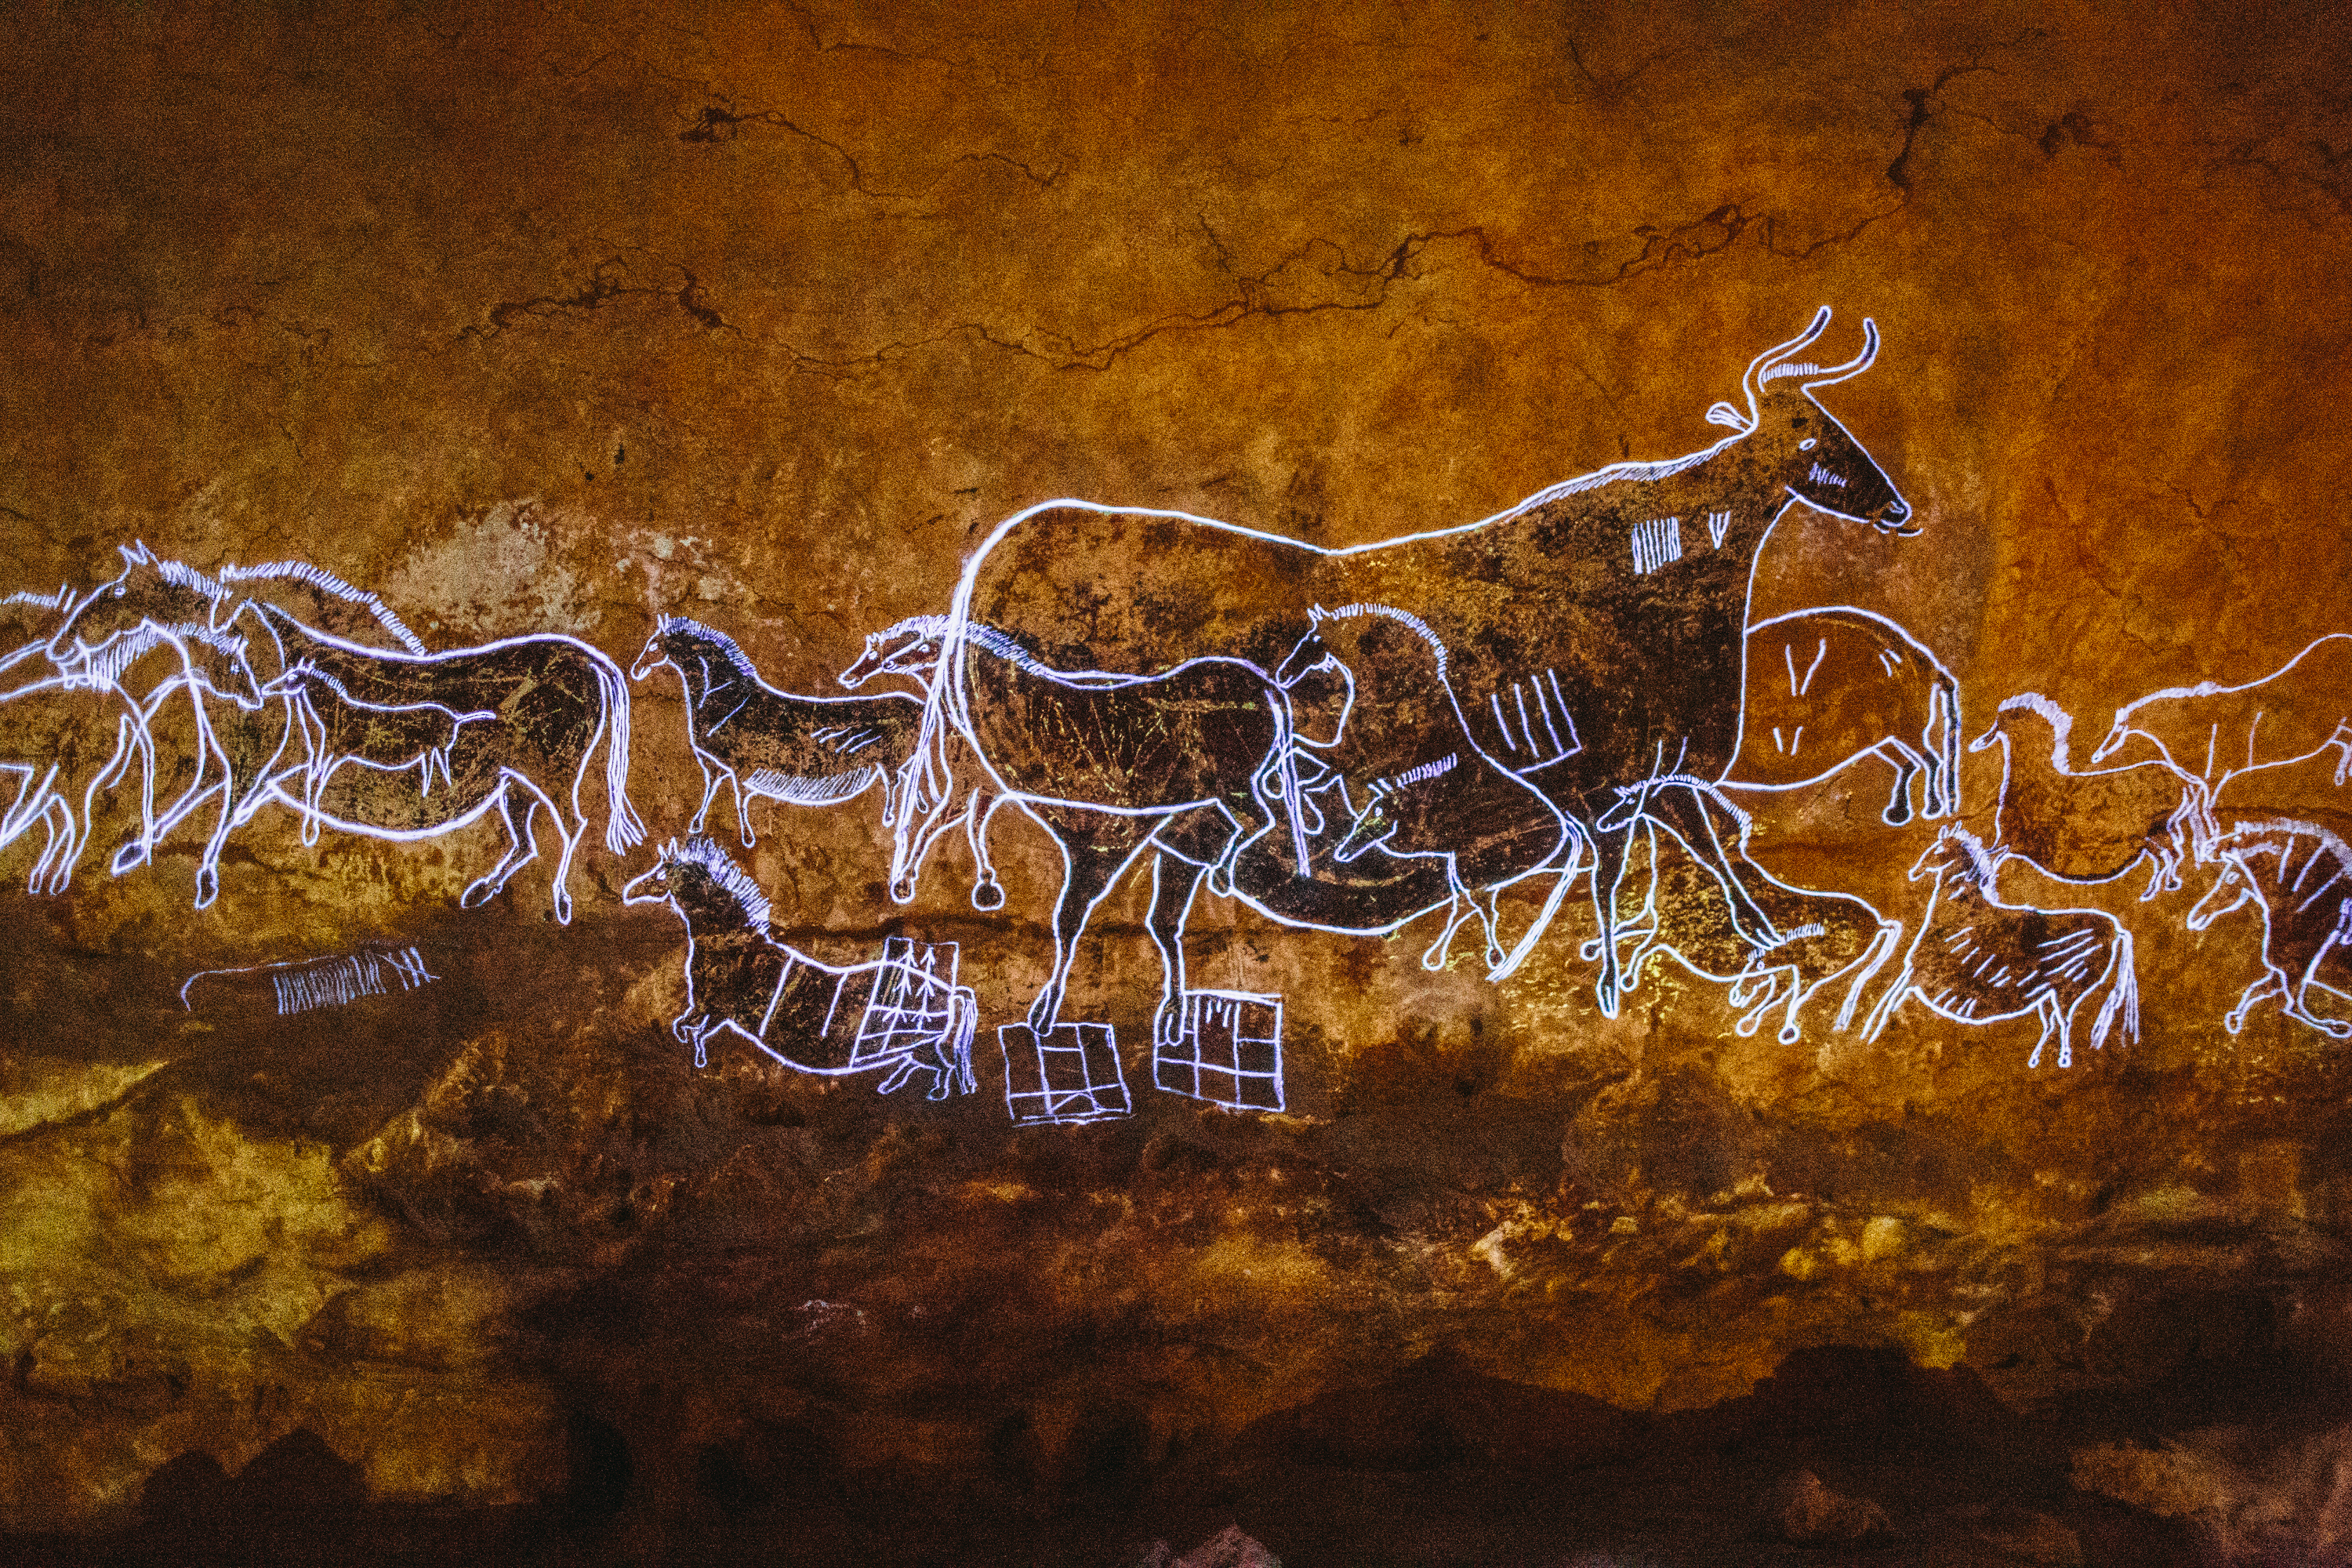 Dordogne rock art